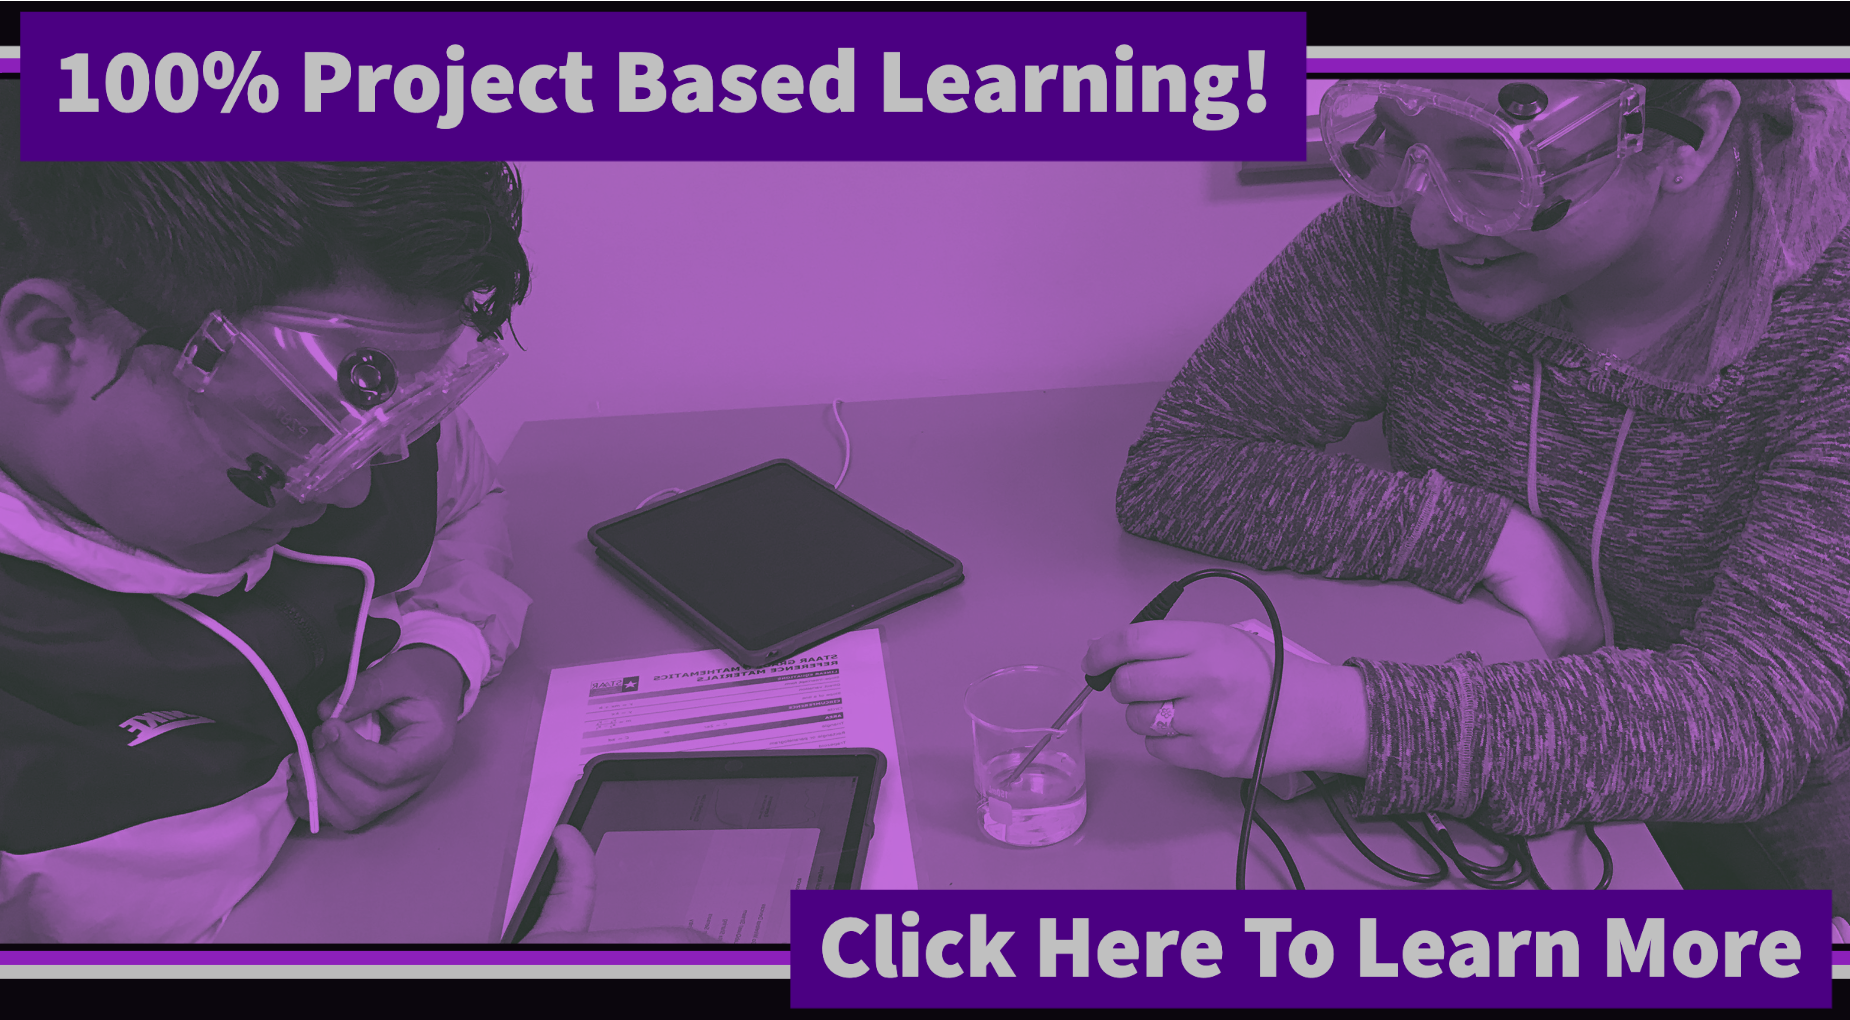 100% Project Based Learning!